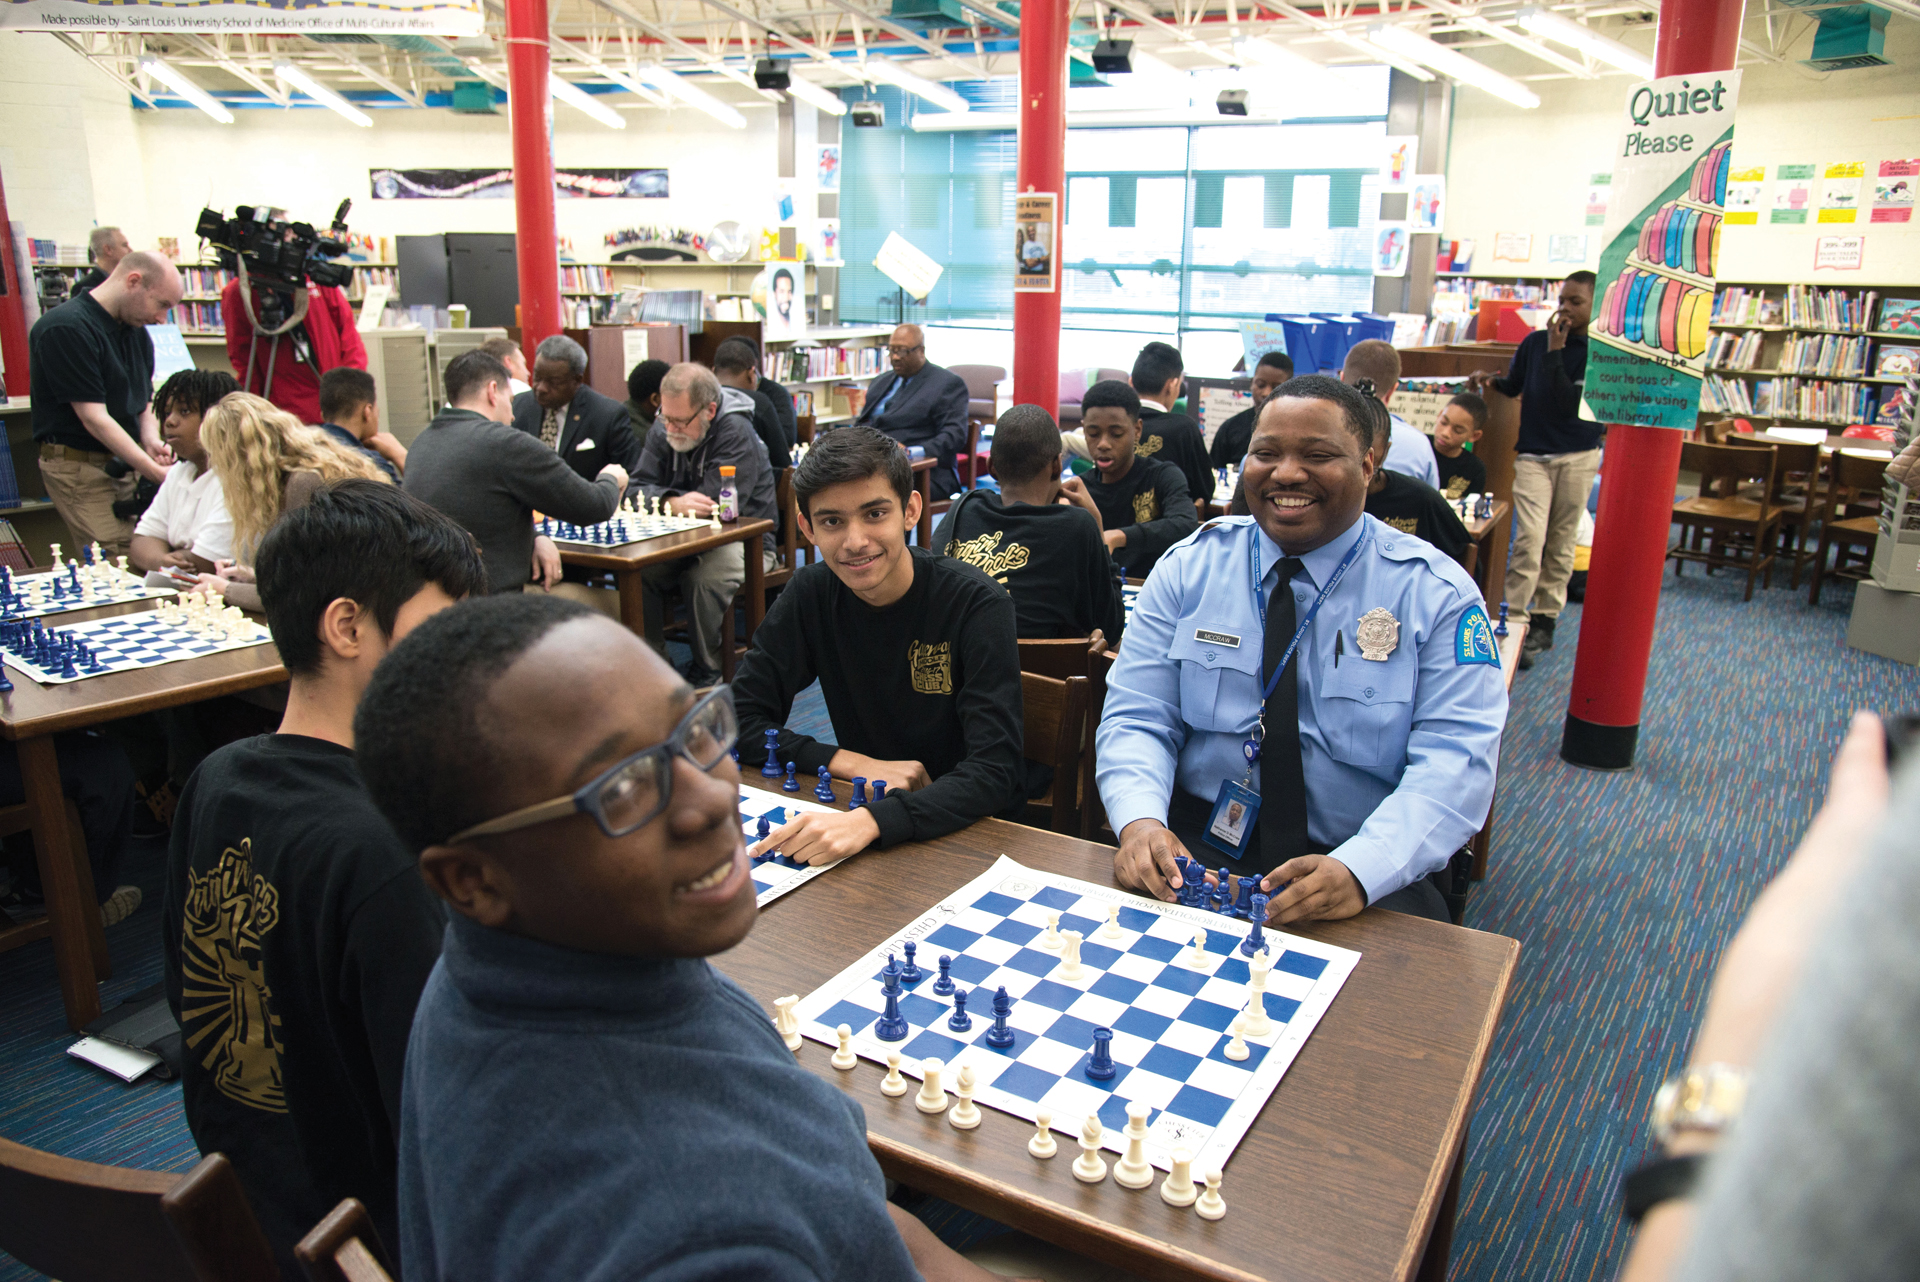 Officer Nate McGraw enjoying a chess game with St. Louis Public School students.